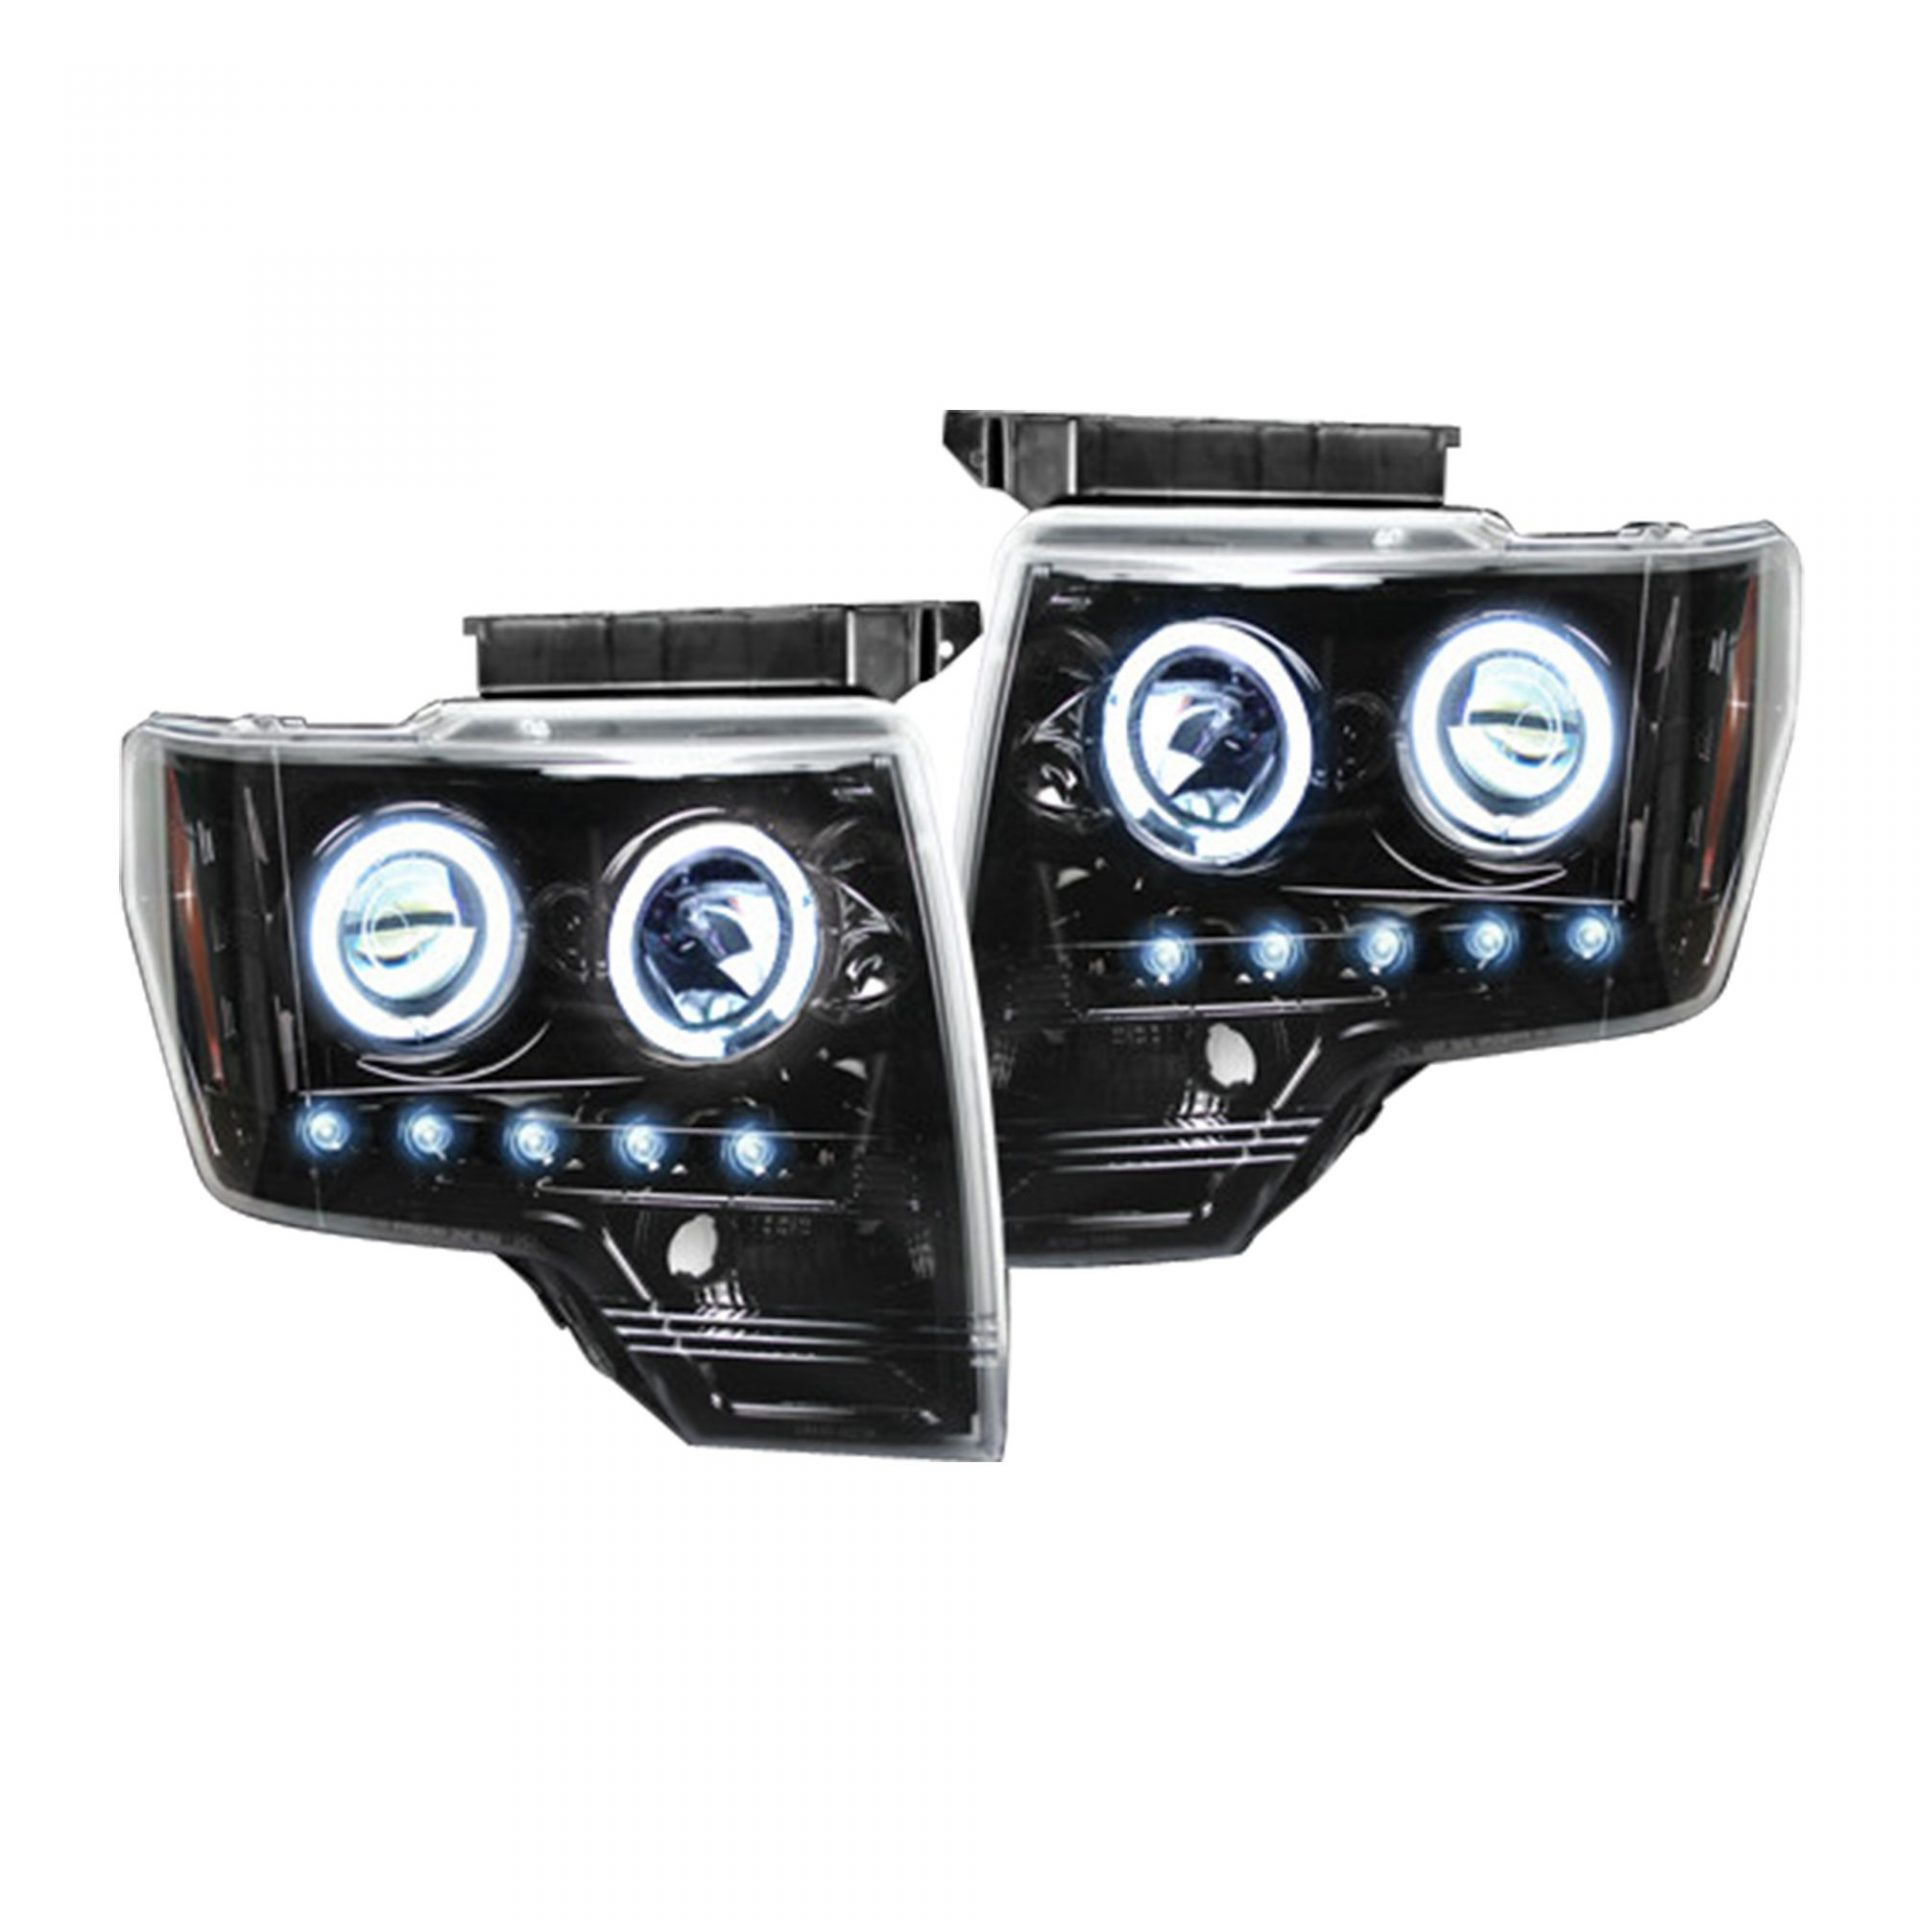 Ford Raptor Projector Headlights Truck & Car Parts BKCC